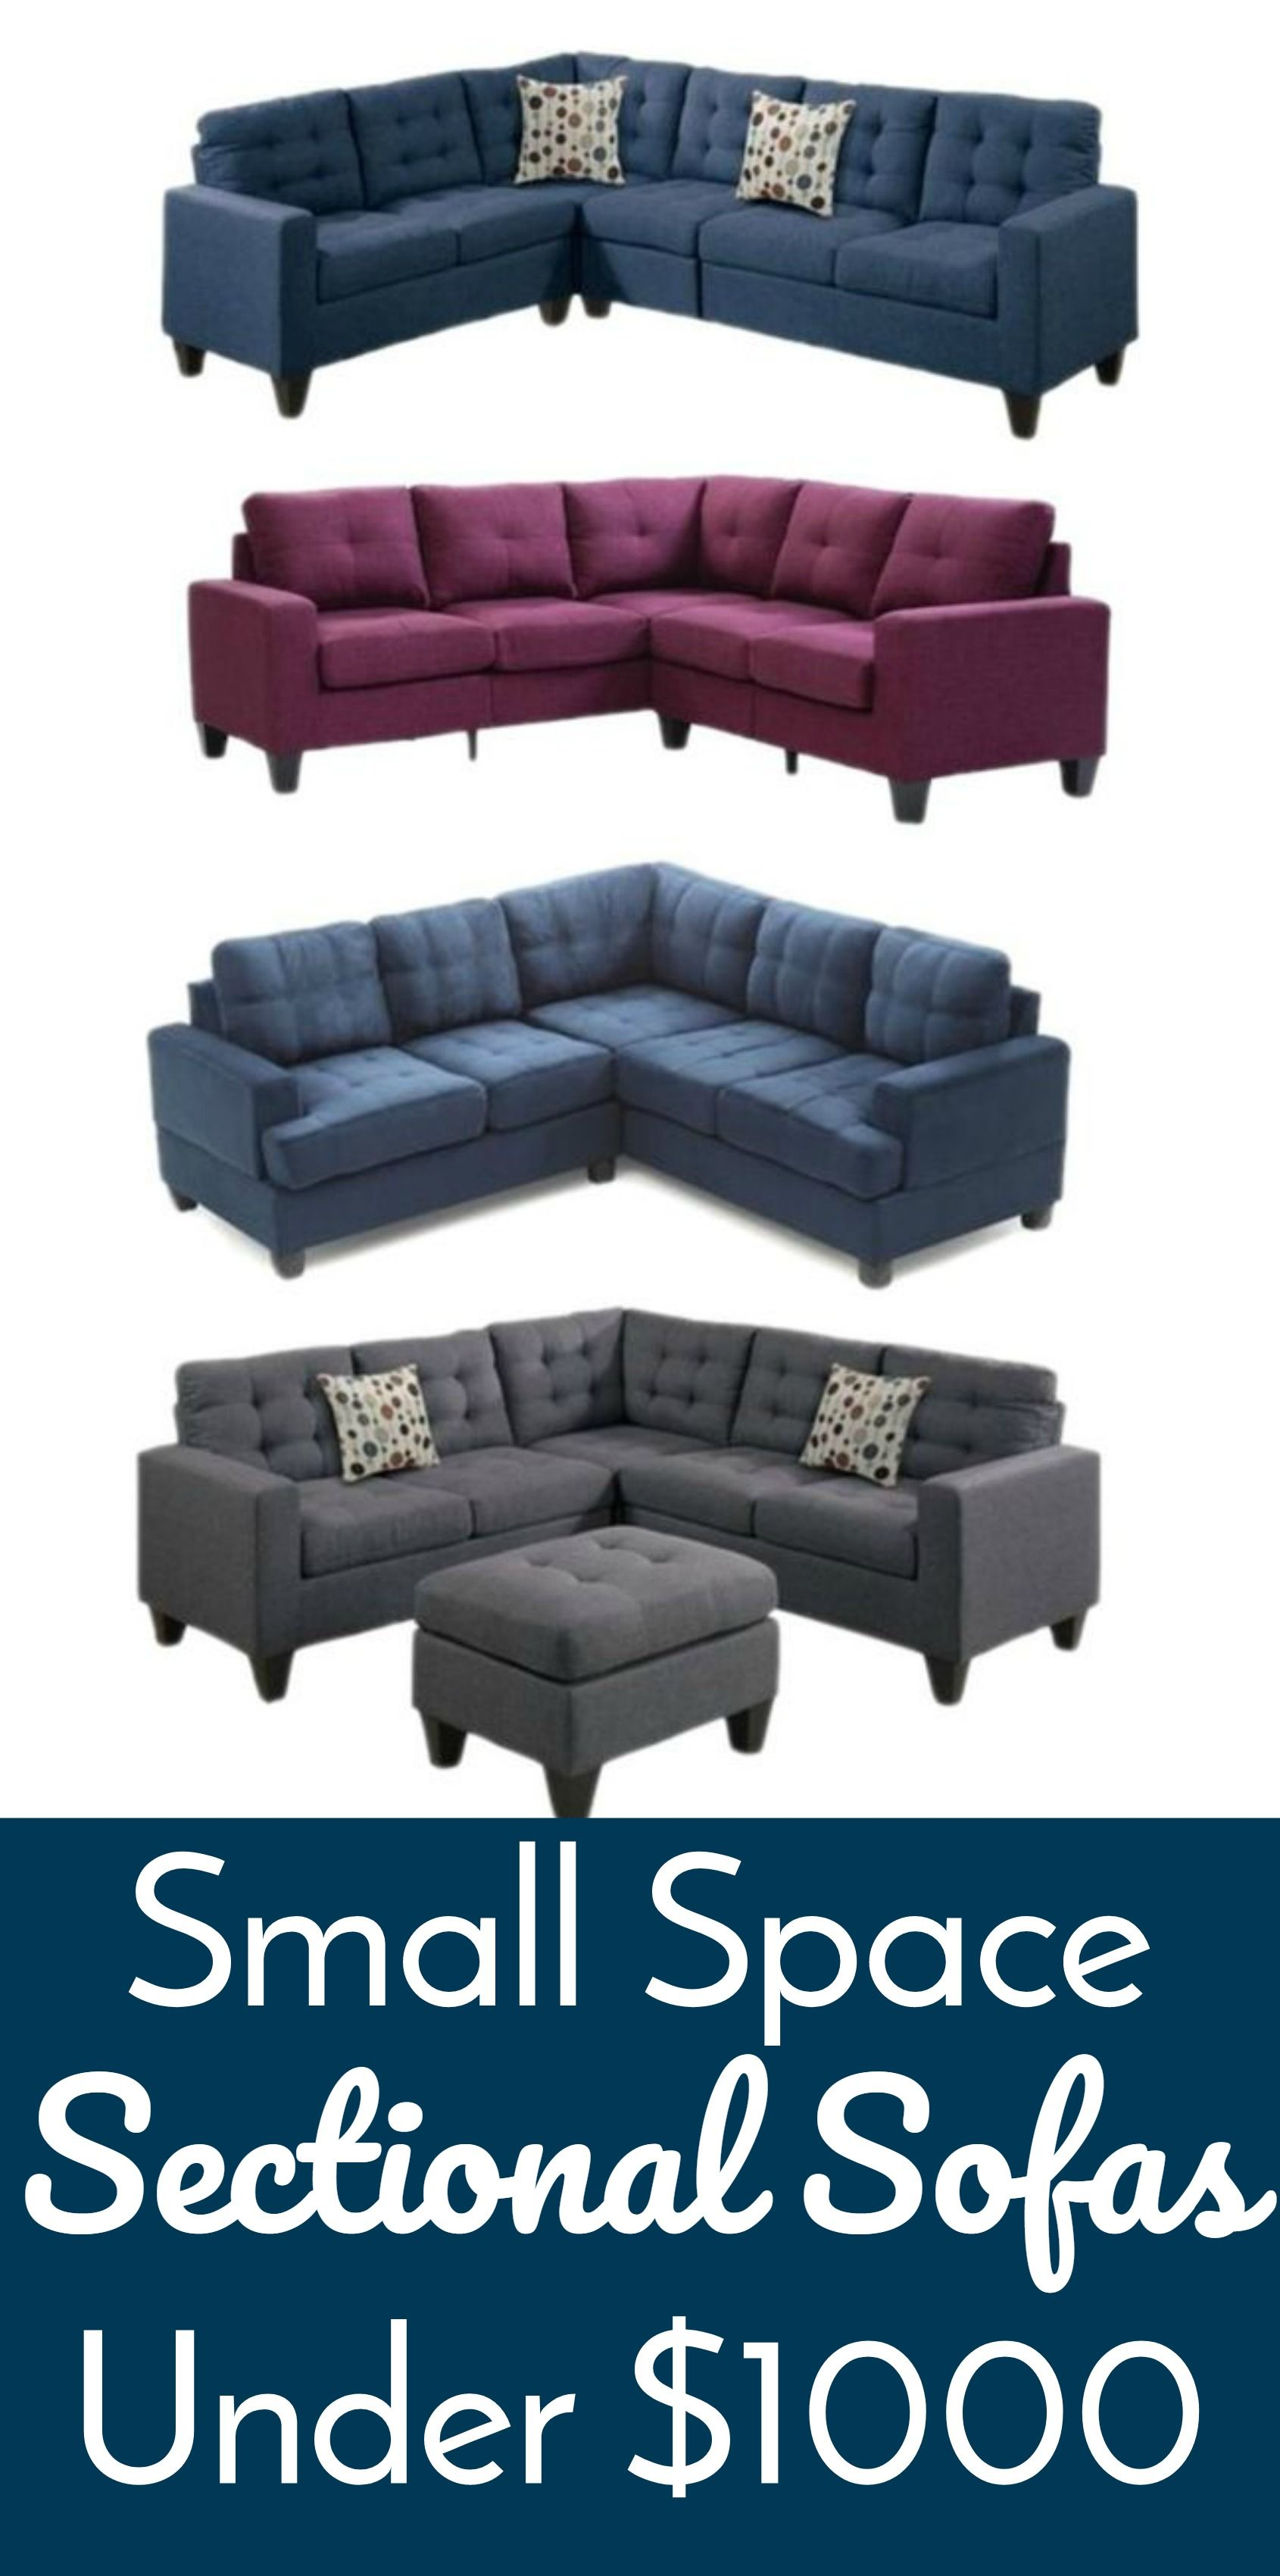 Small Space Sectional Sofas Under 1000 Small Space Sectional